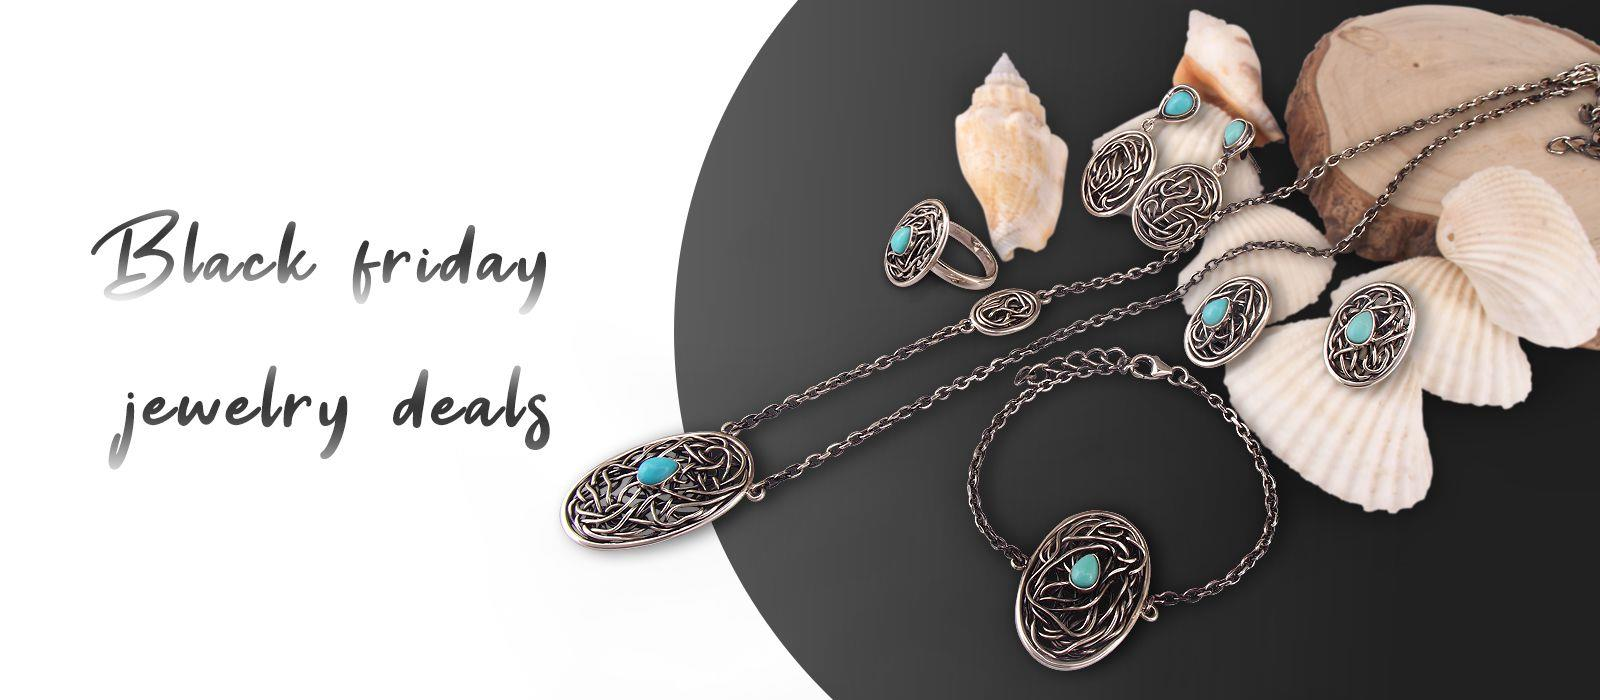 Black friday jewelry deals 2020